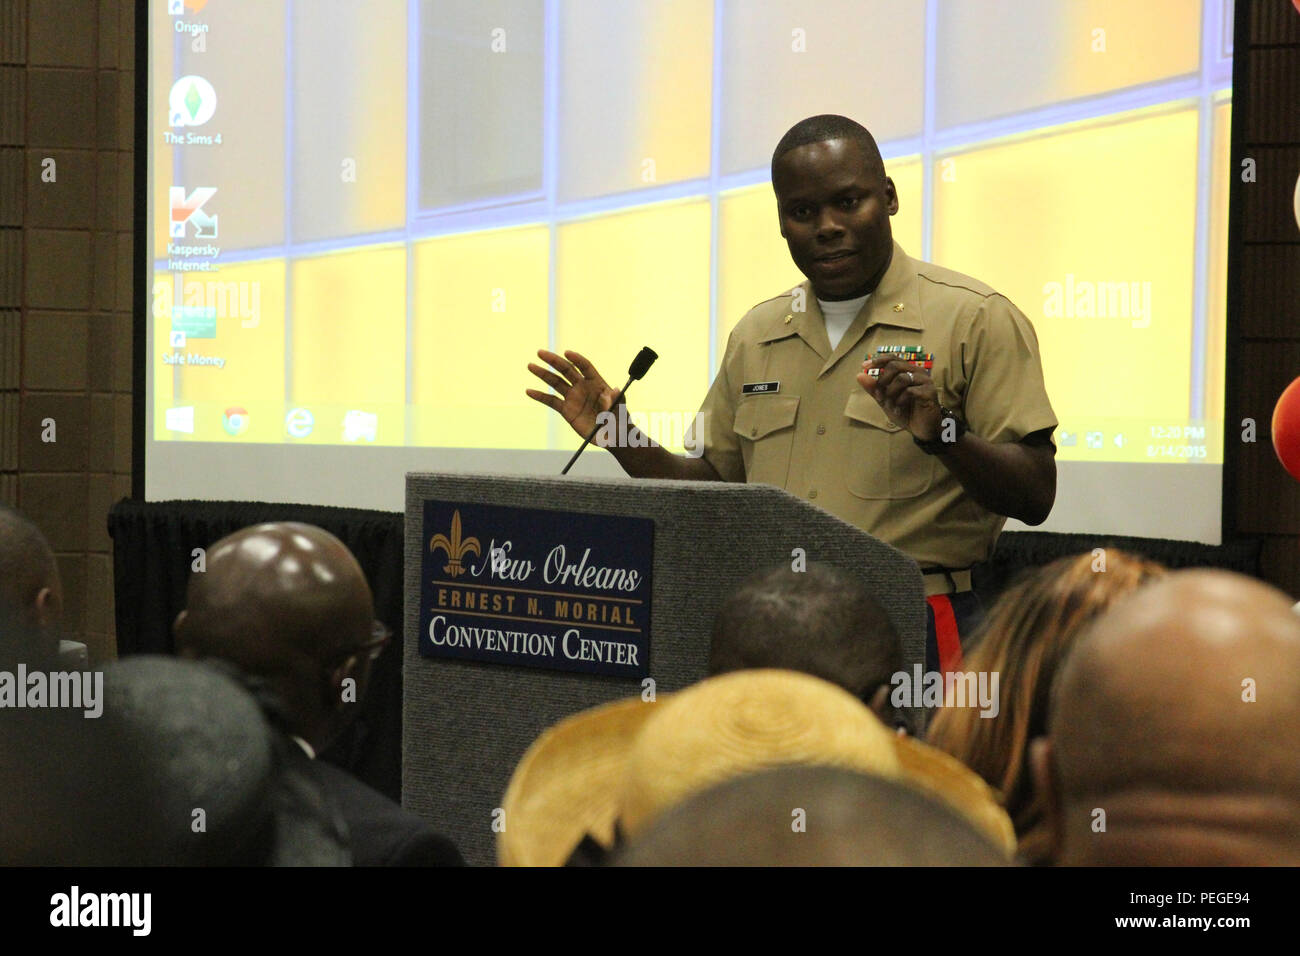 Maj. Tito Jones, Marine Corps Base Camp Smedley D. Butler, Okinawa, deputy provost marshal, speaks during the undergraduate Student of the Year Scholarship Program held by the Kappa Alpha Psi Fraternity, Inc., for their 82nd Grand Chapter Meeting held in New Orleans, Aug. 14, 2015. Thousands of undergraduate youth descended on New Orleans to participate in the annual Grand Chapter Meeting and had an opportunity to meet and interact with Marines who are members of the fraternity. (U.S. Marine Corps photo by Sgt. Rubin J. Tan) - Stock Image